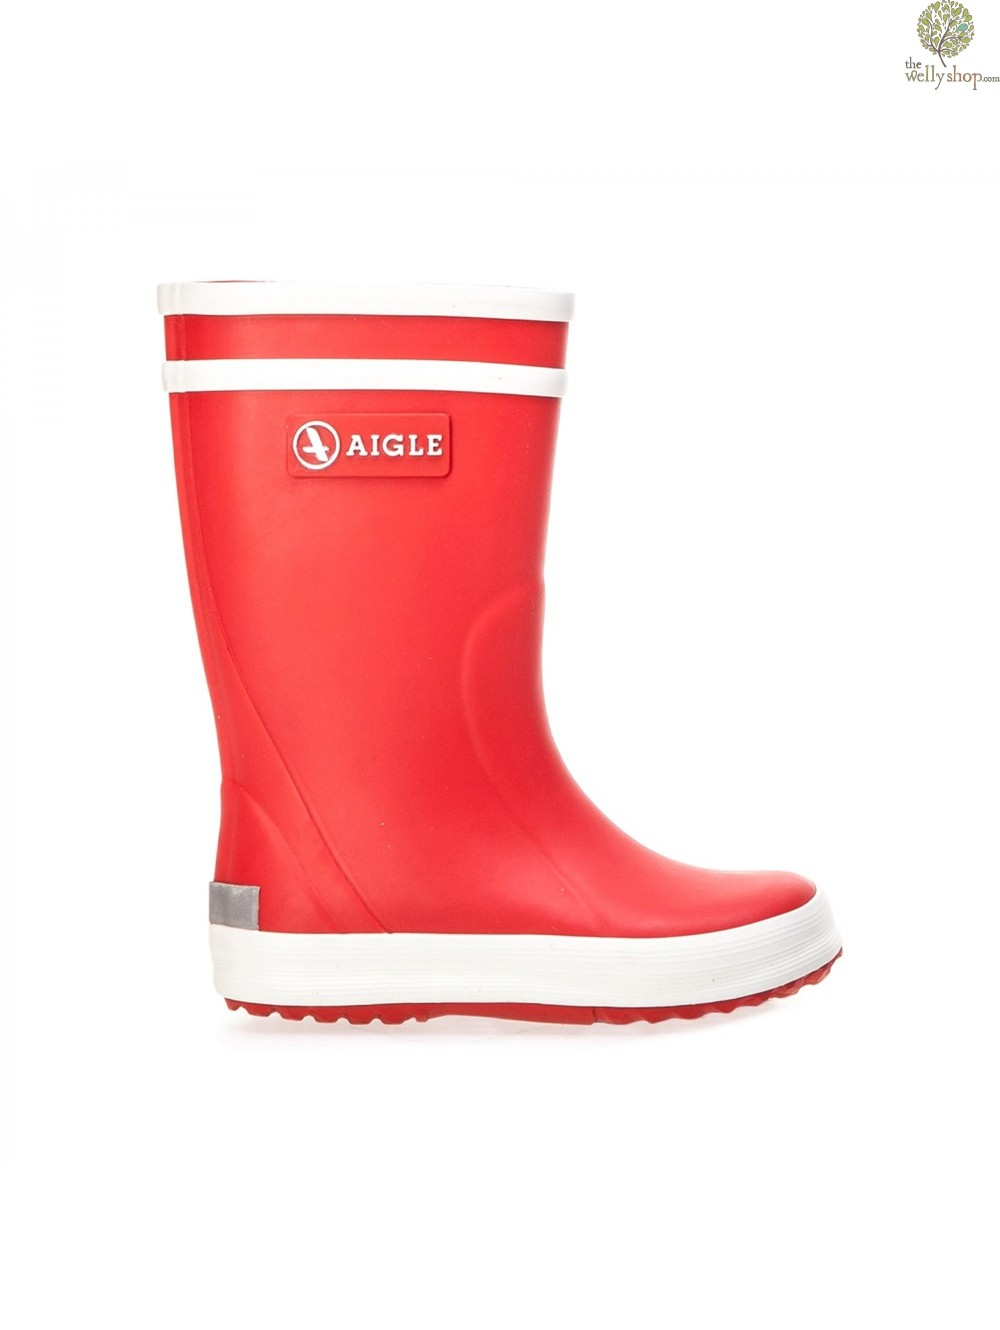 Aigle Lollypop Childrens Wellies Red